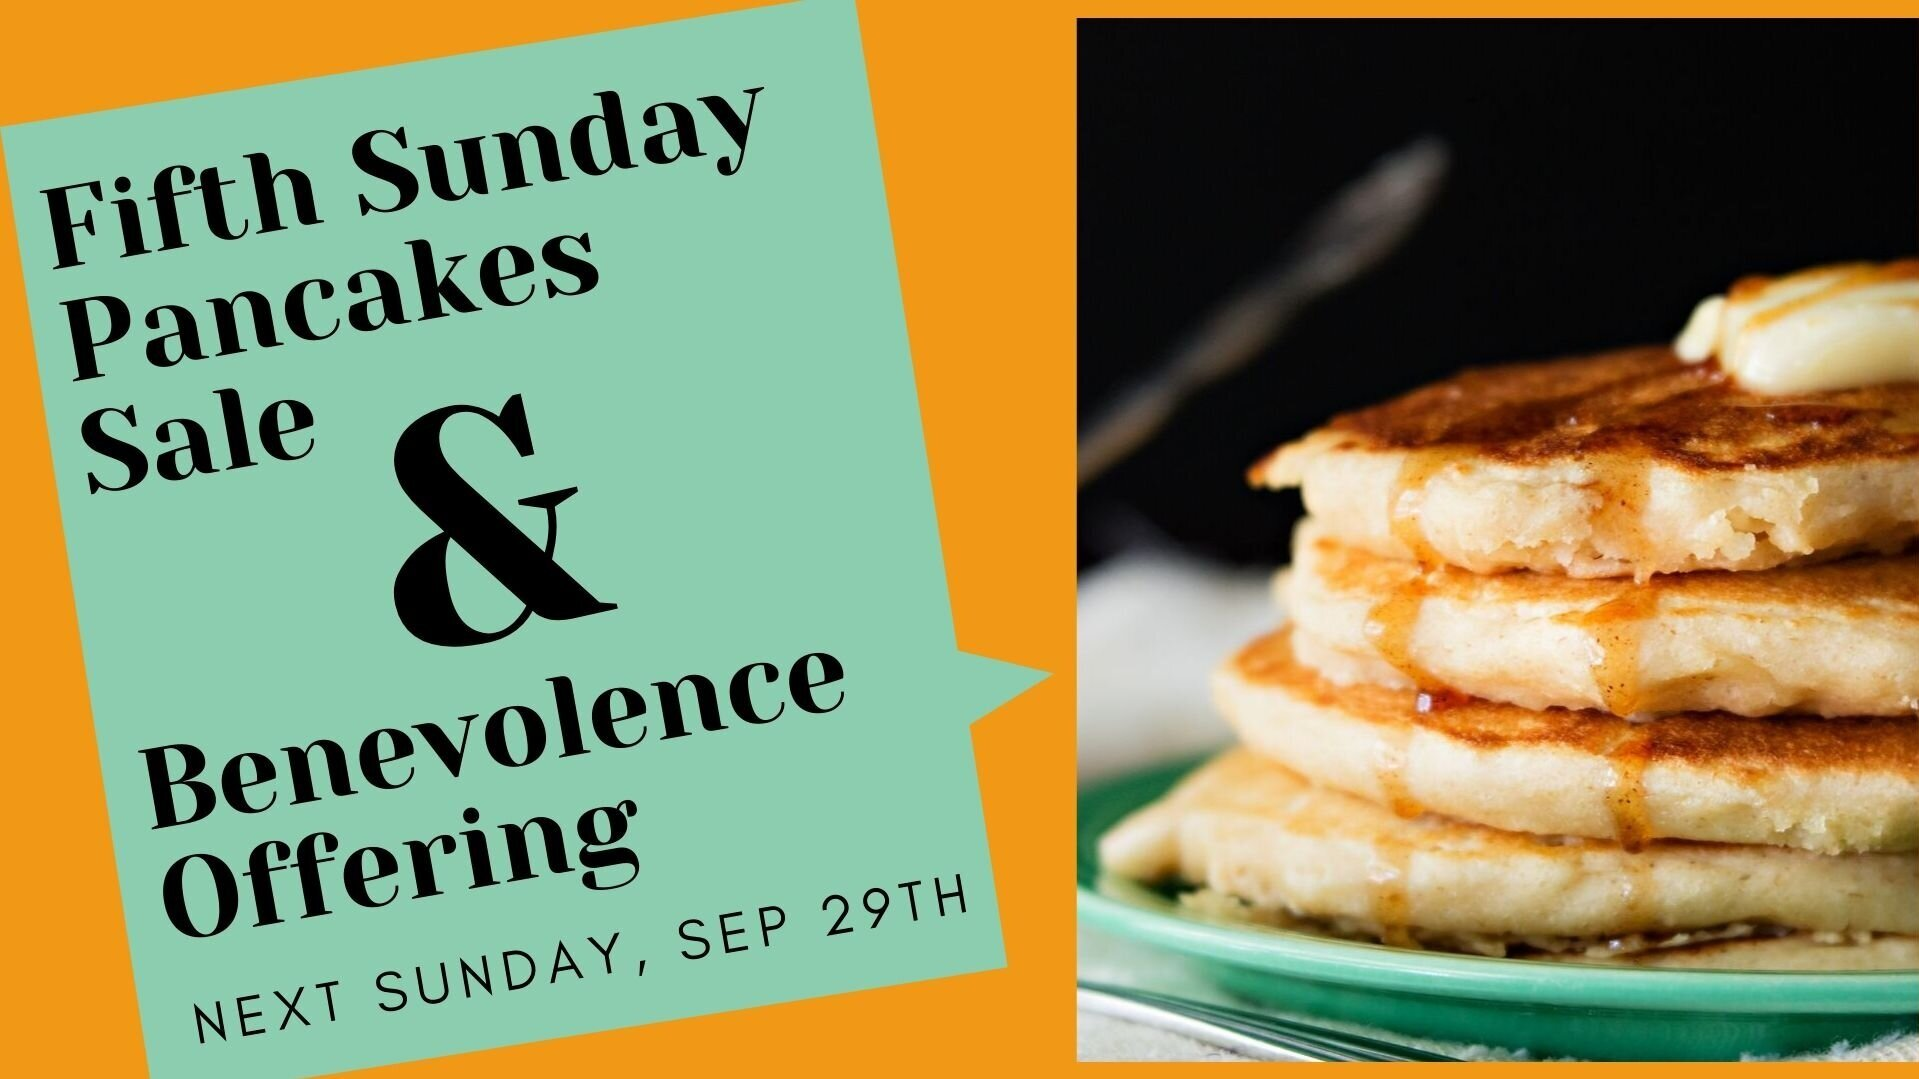 Please Note this Event will be Sunday, September 29th.